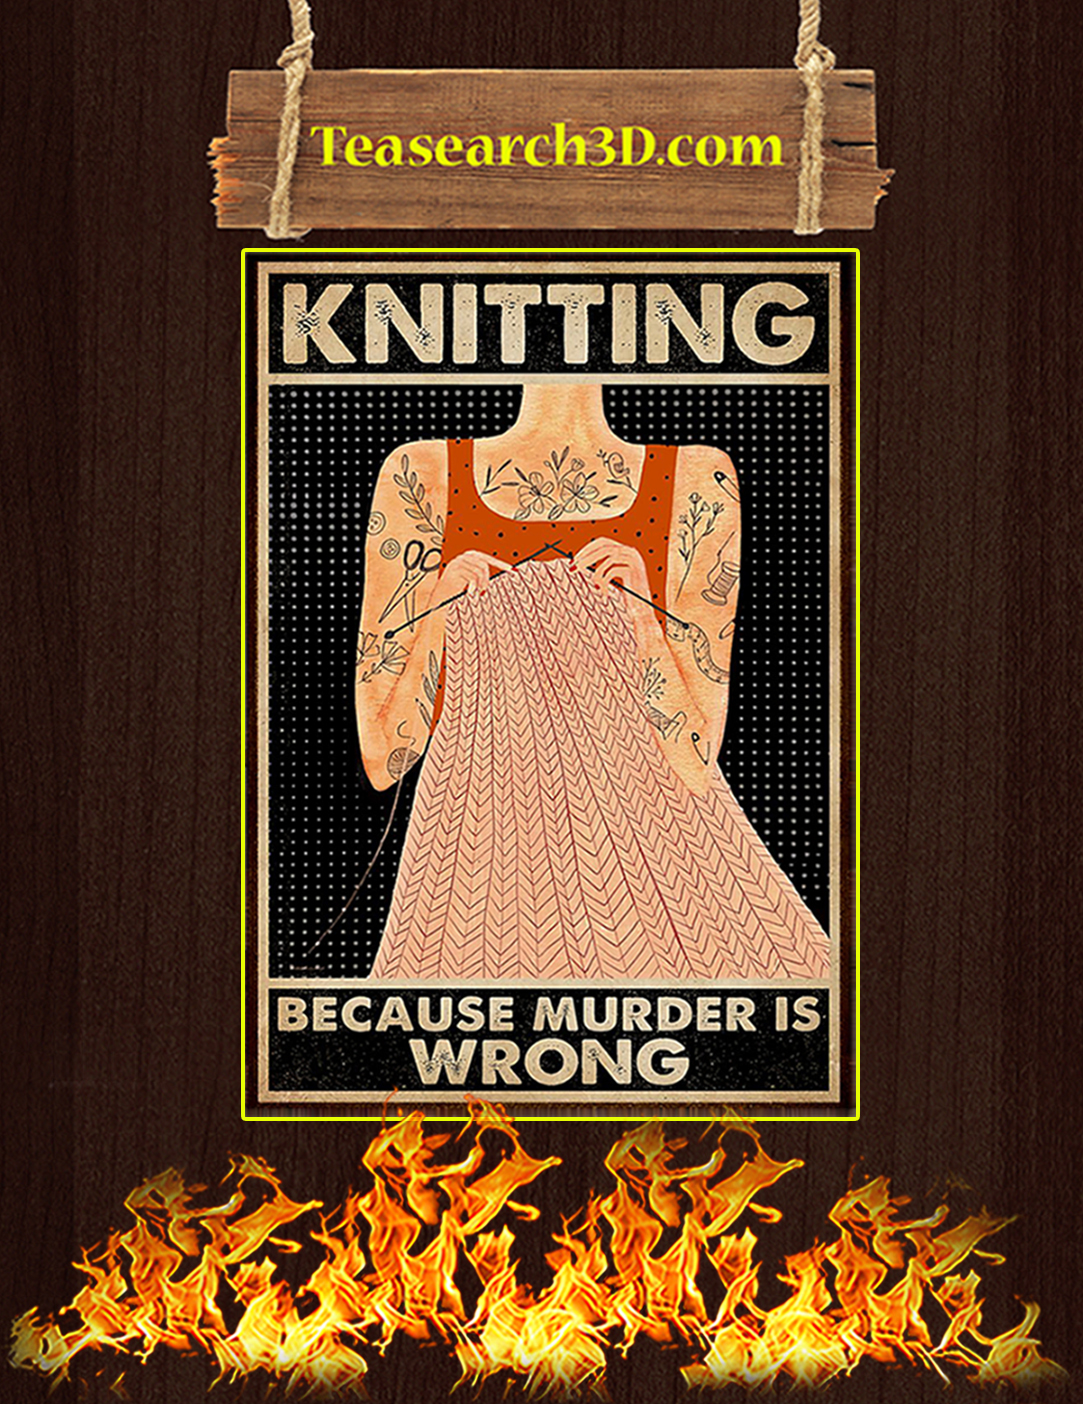 Tattoo girl knitting because murder is wrong poster A2